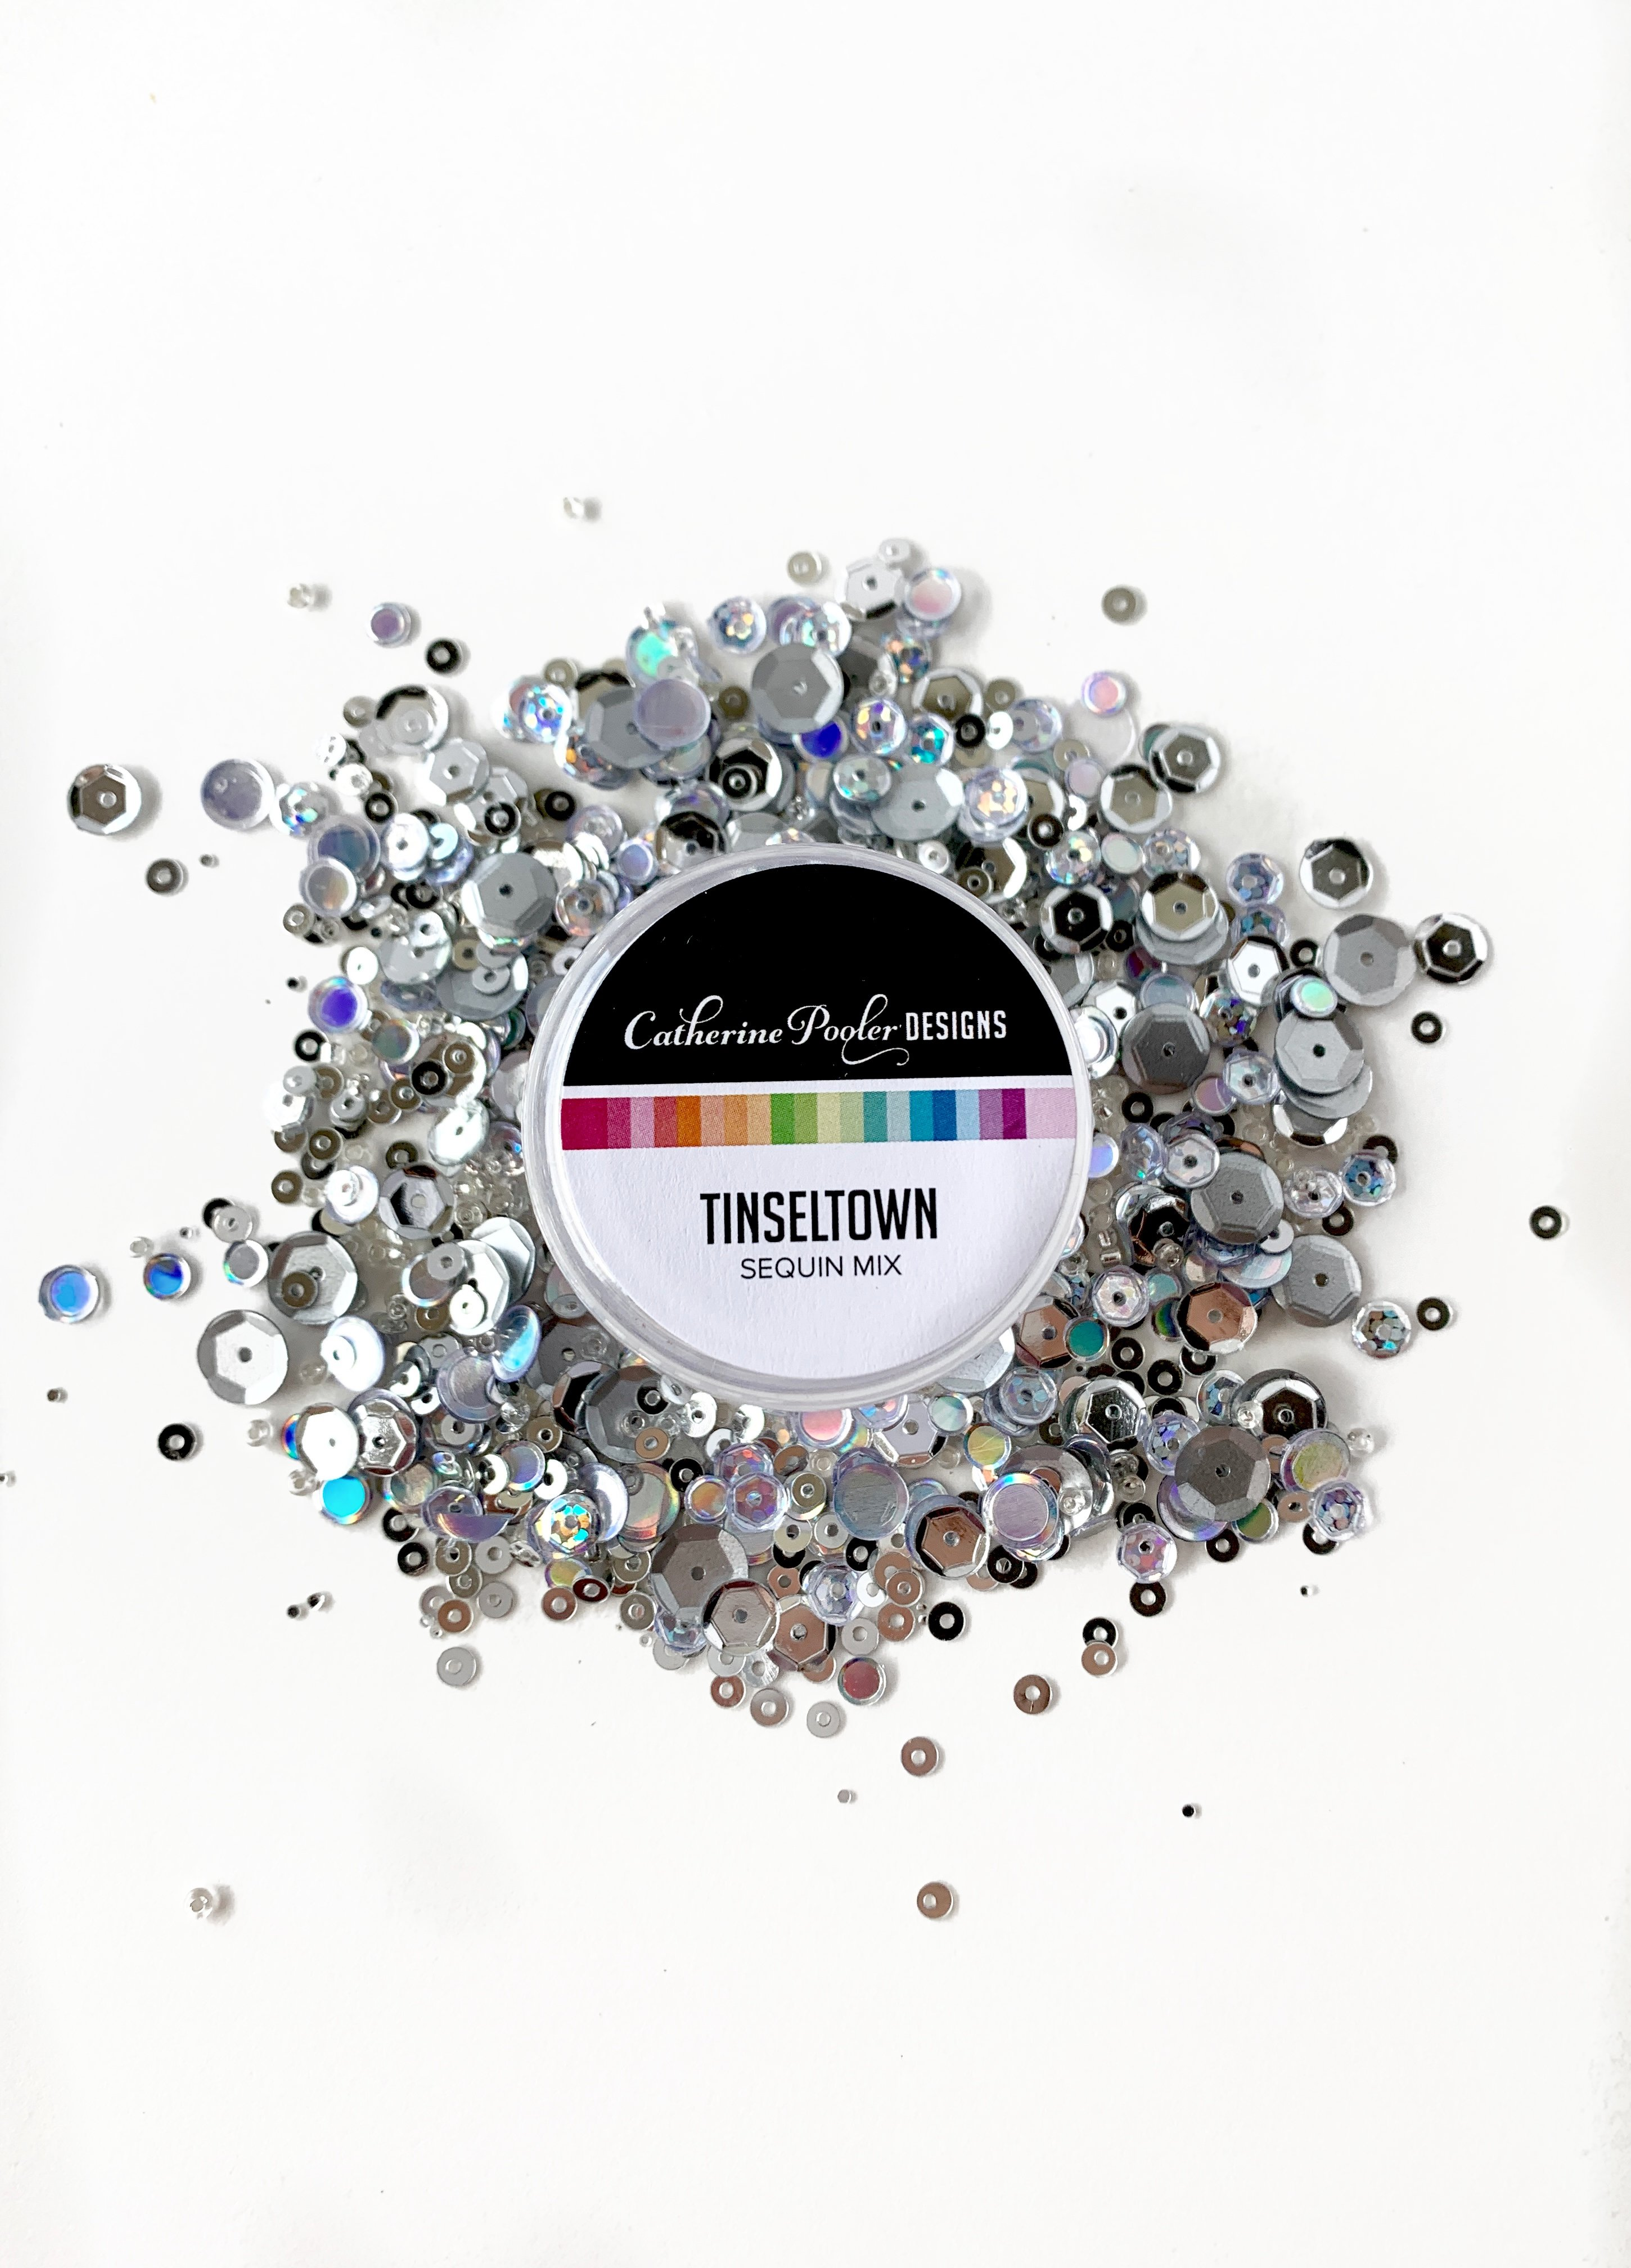 Tinseltown Sequin Mix